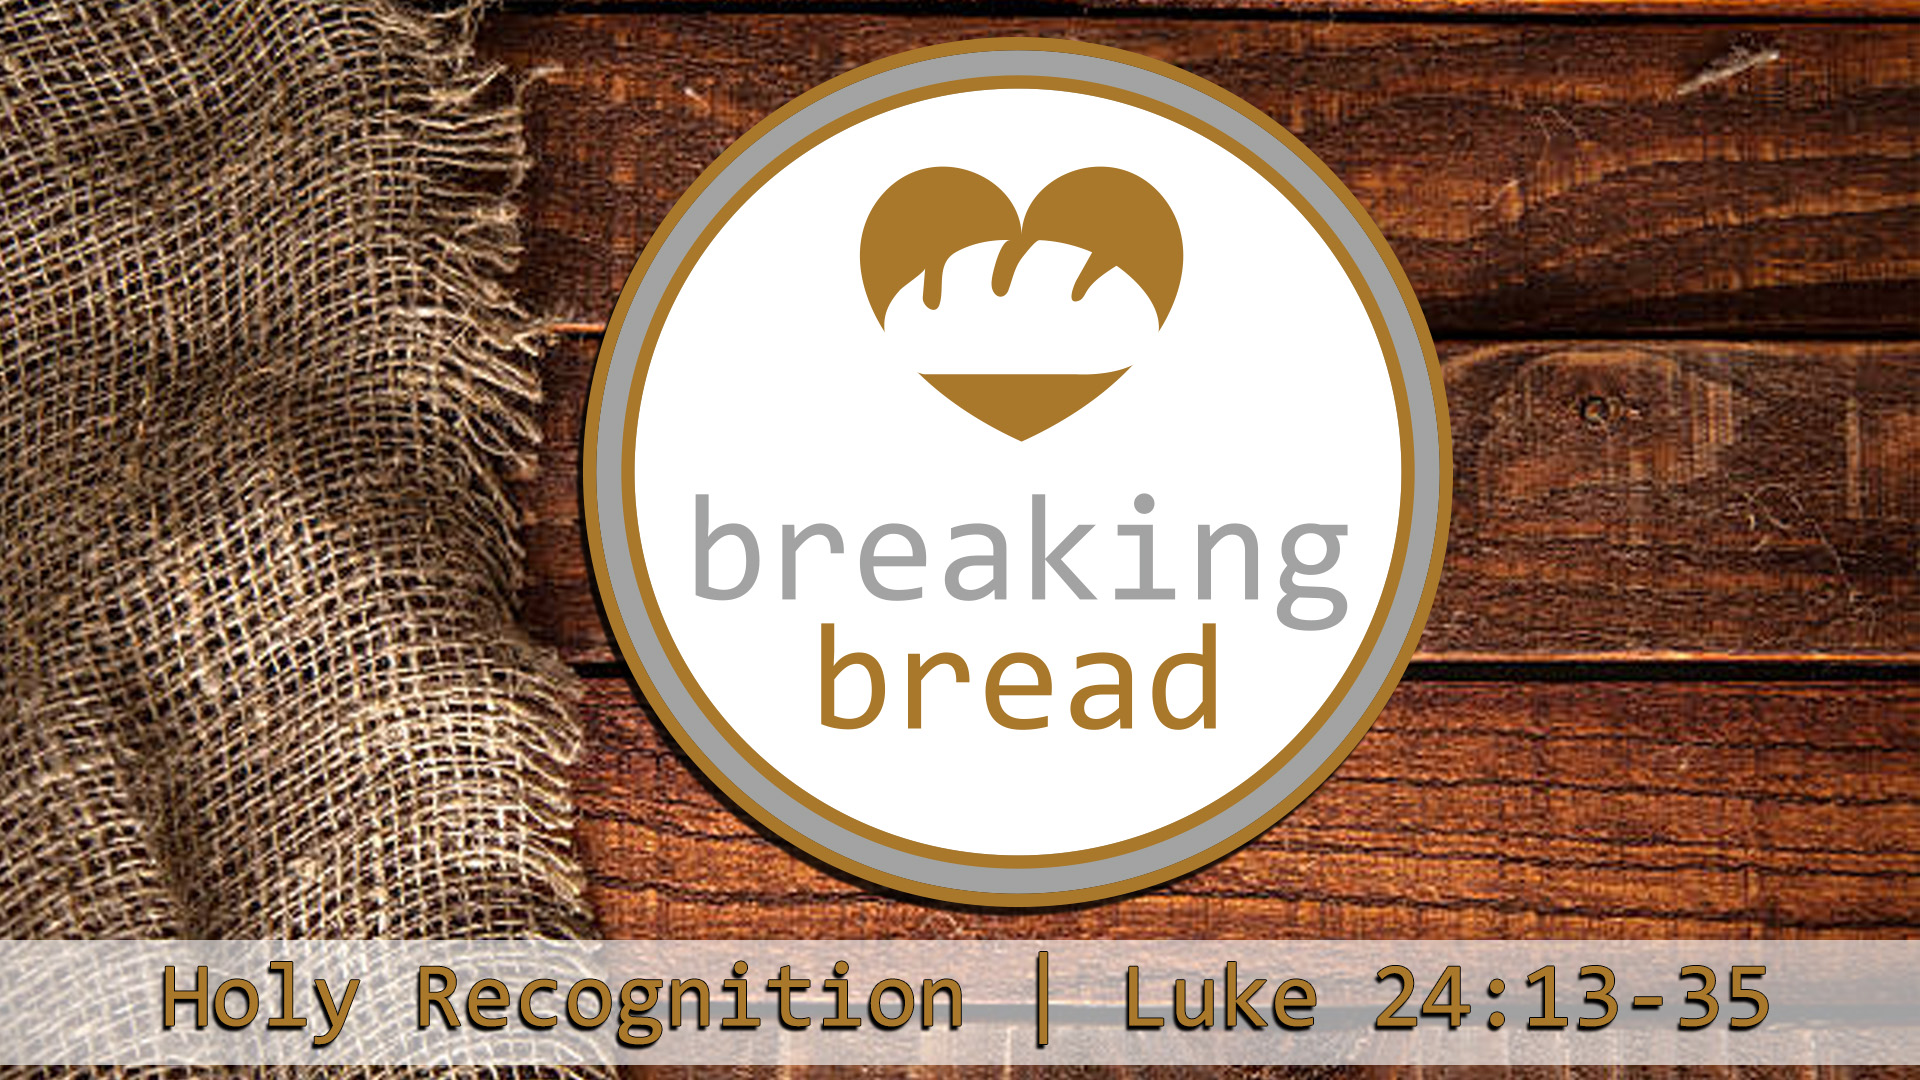 Holy_Recognition_breaking_bread_Sanctuary